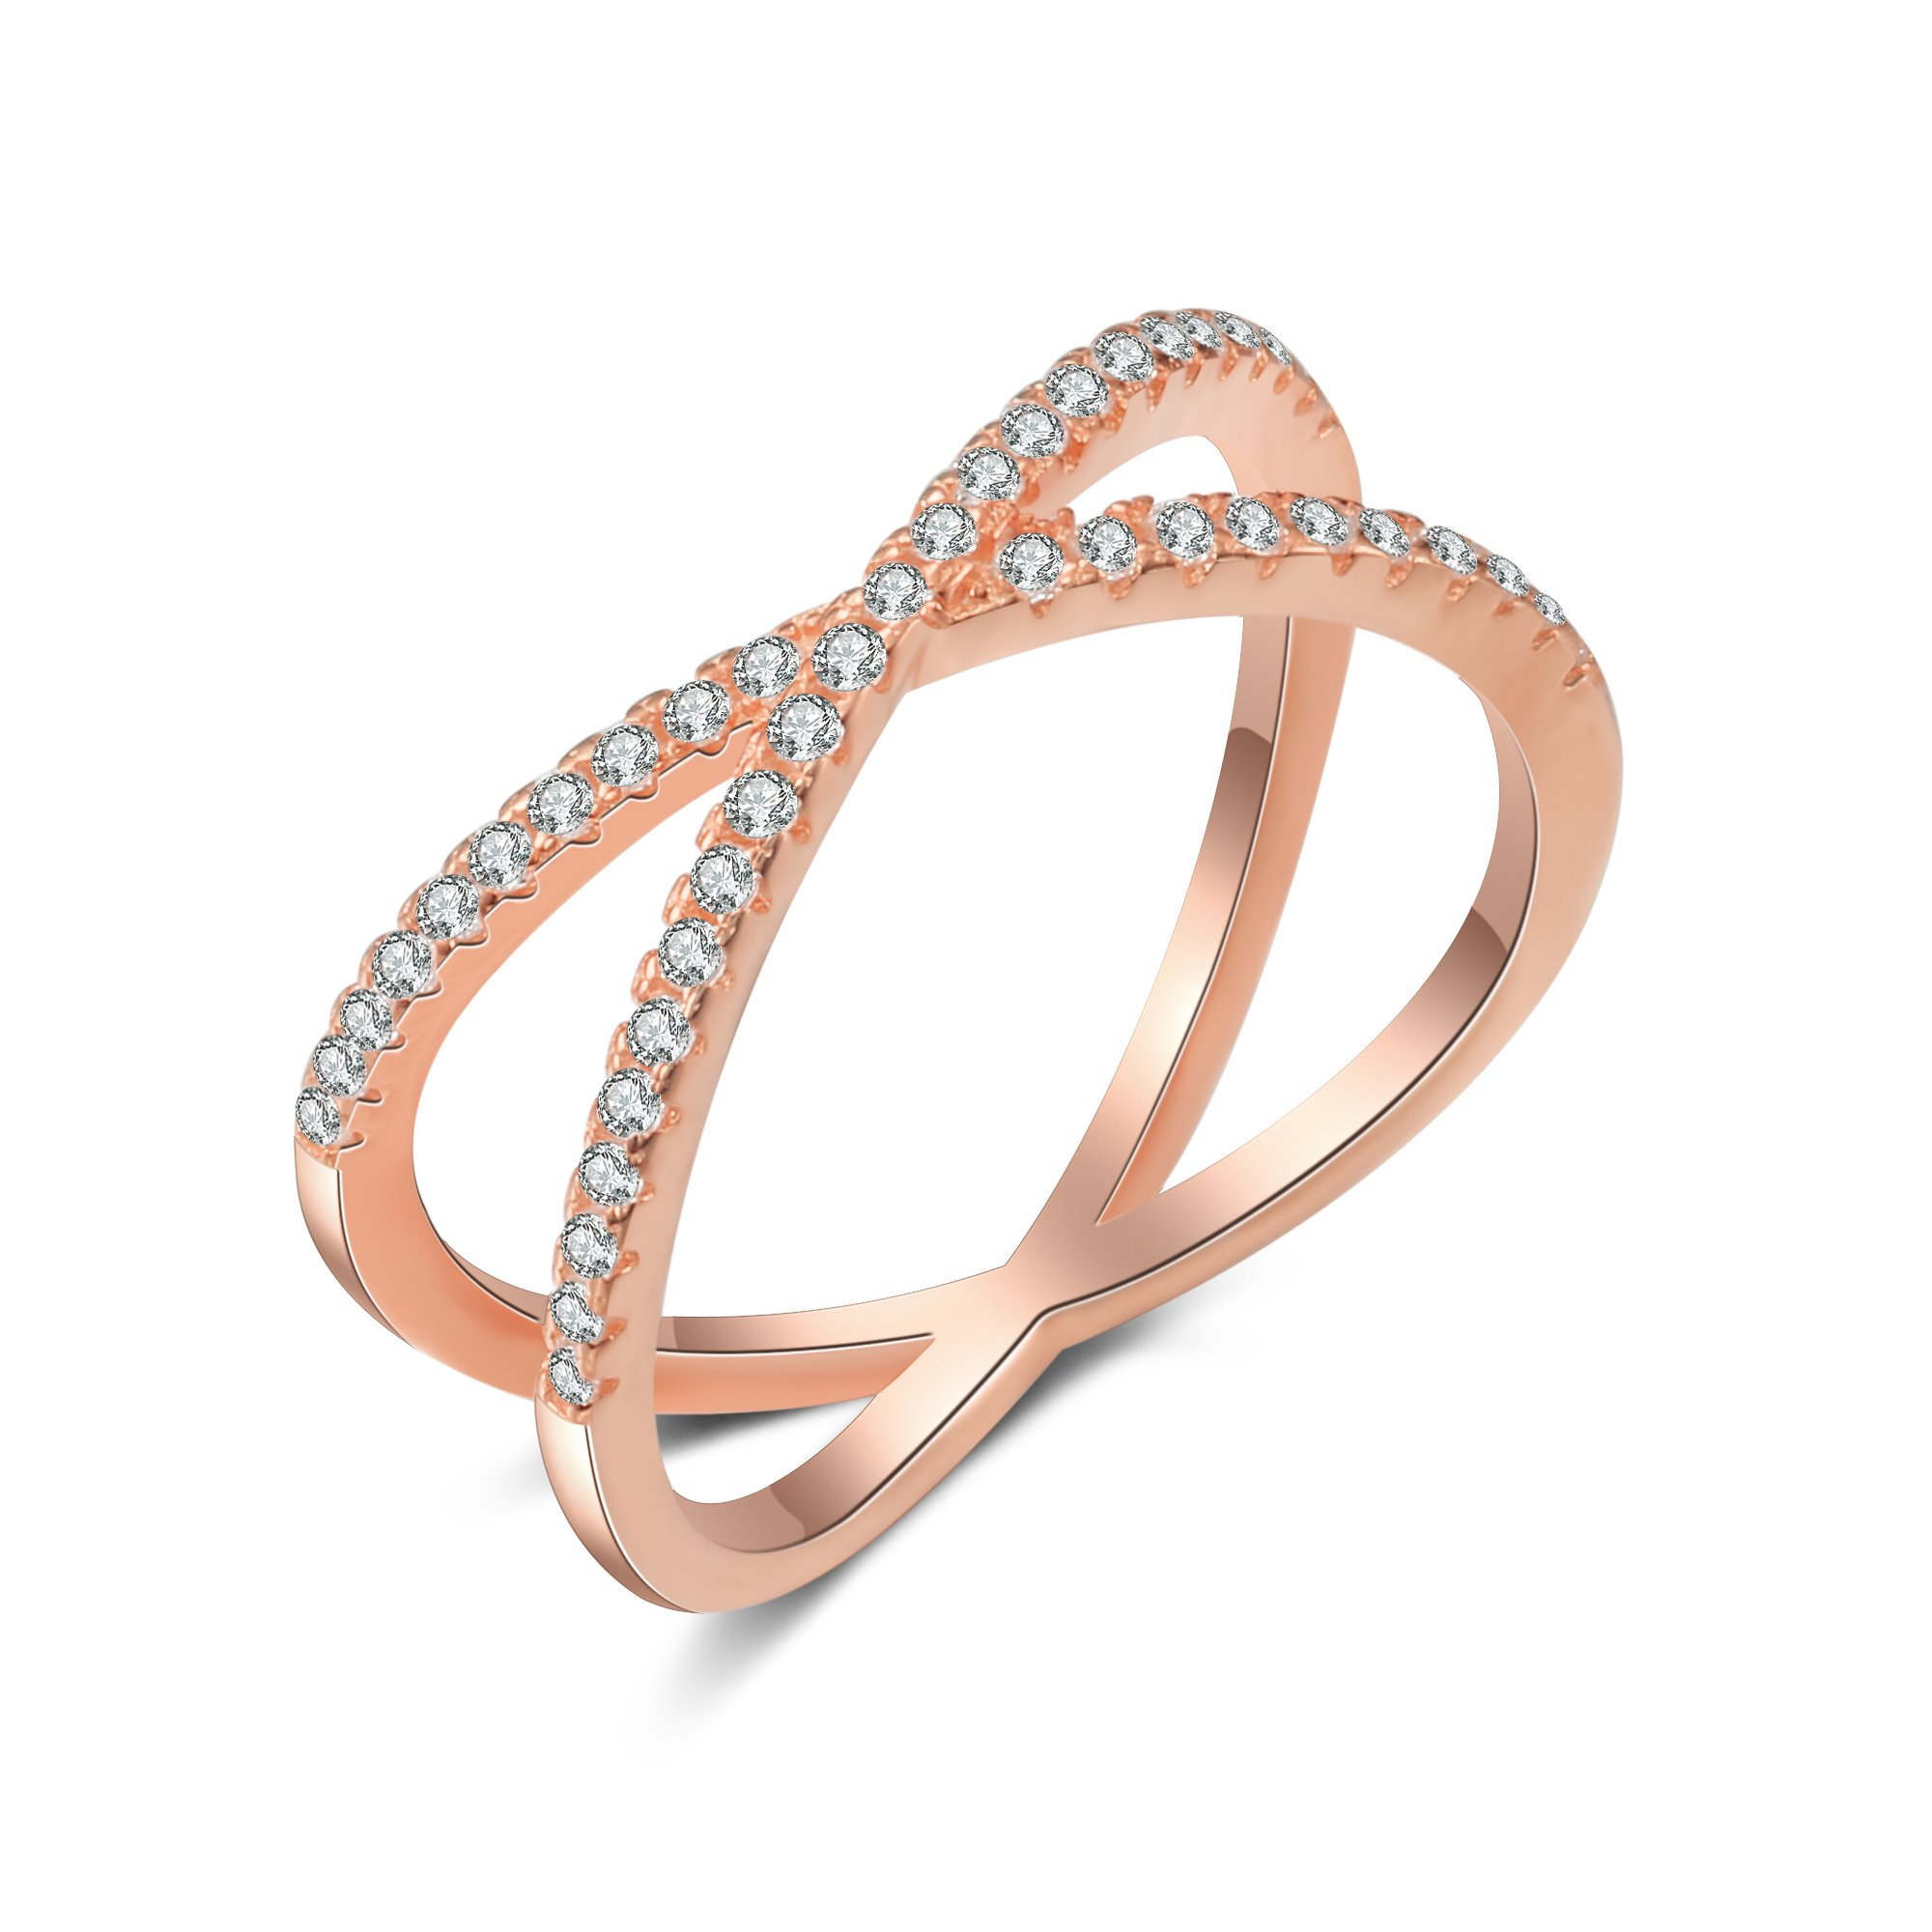 X Ring Sterling Silver, Cubic Zirconia X Criss Cross Ring Women, Size 6-8 (Rose-Gold-Plated-Silver, 7) by SISGEM (Image #1)